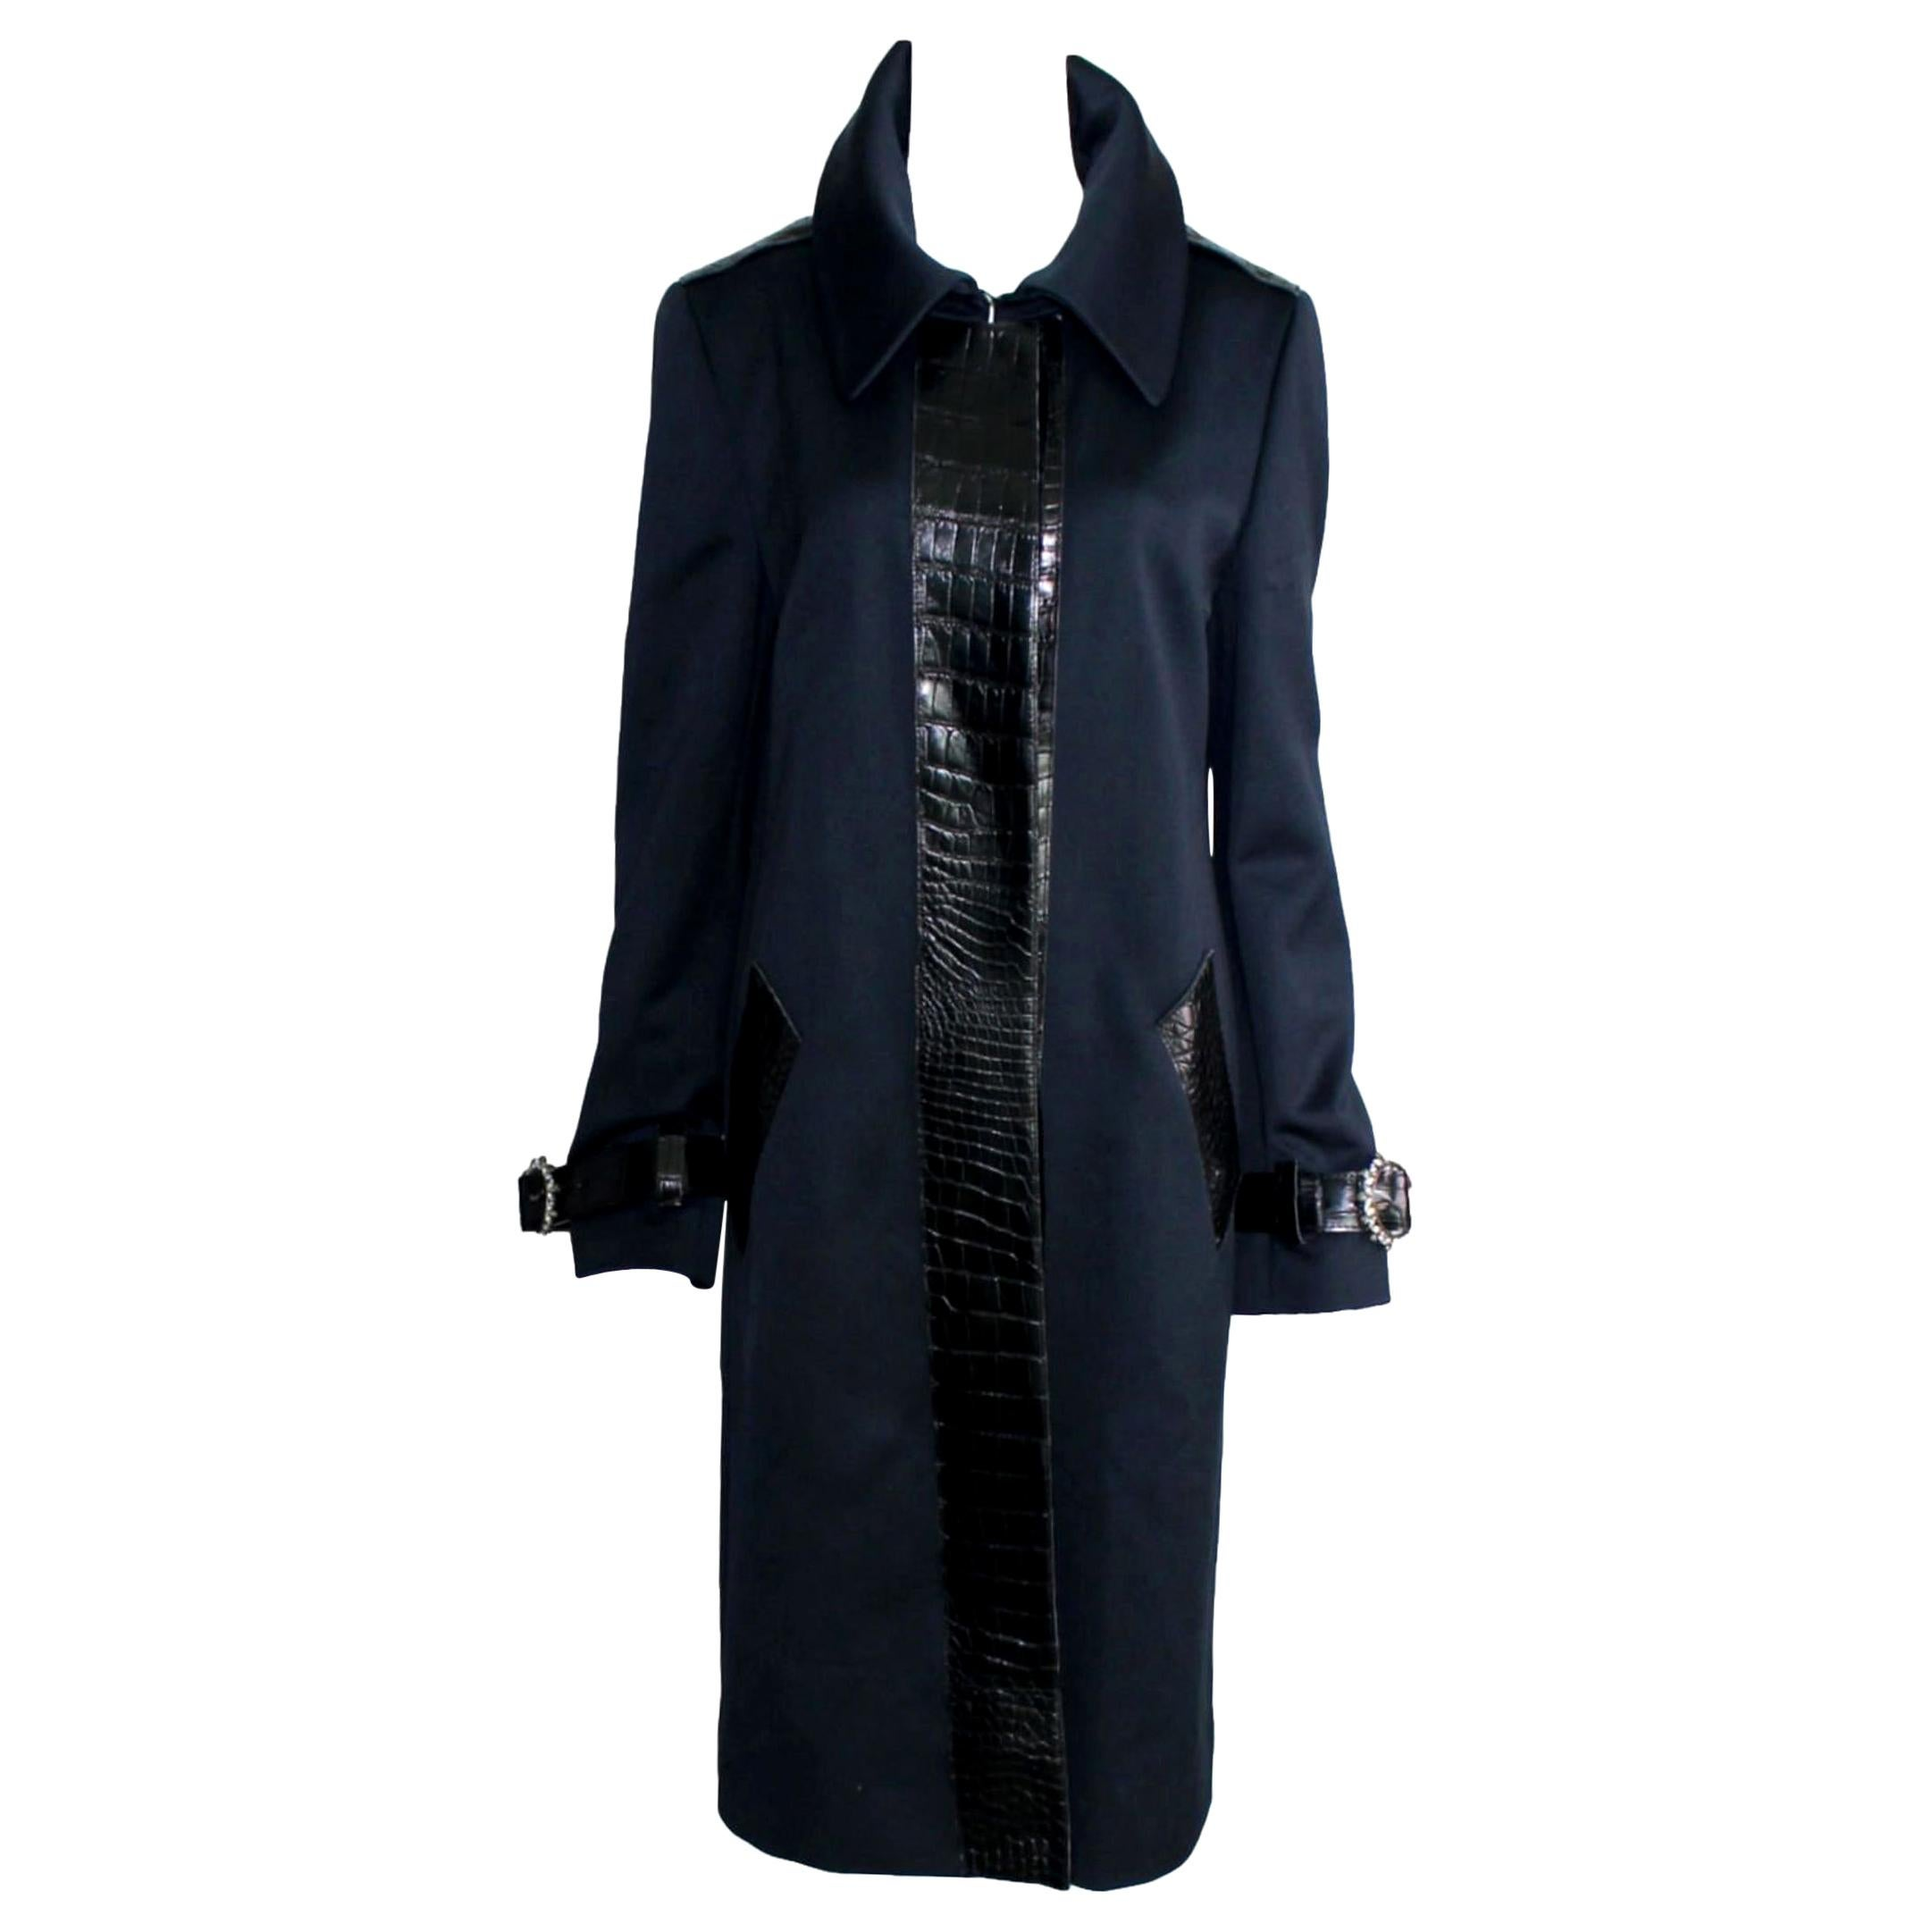 Dolce & Gabbana Exotic Alligator Skin Couture Crystal Jewelled Evening Coat